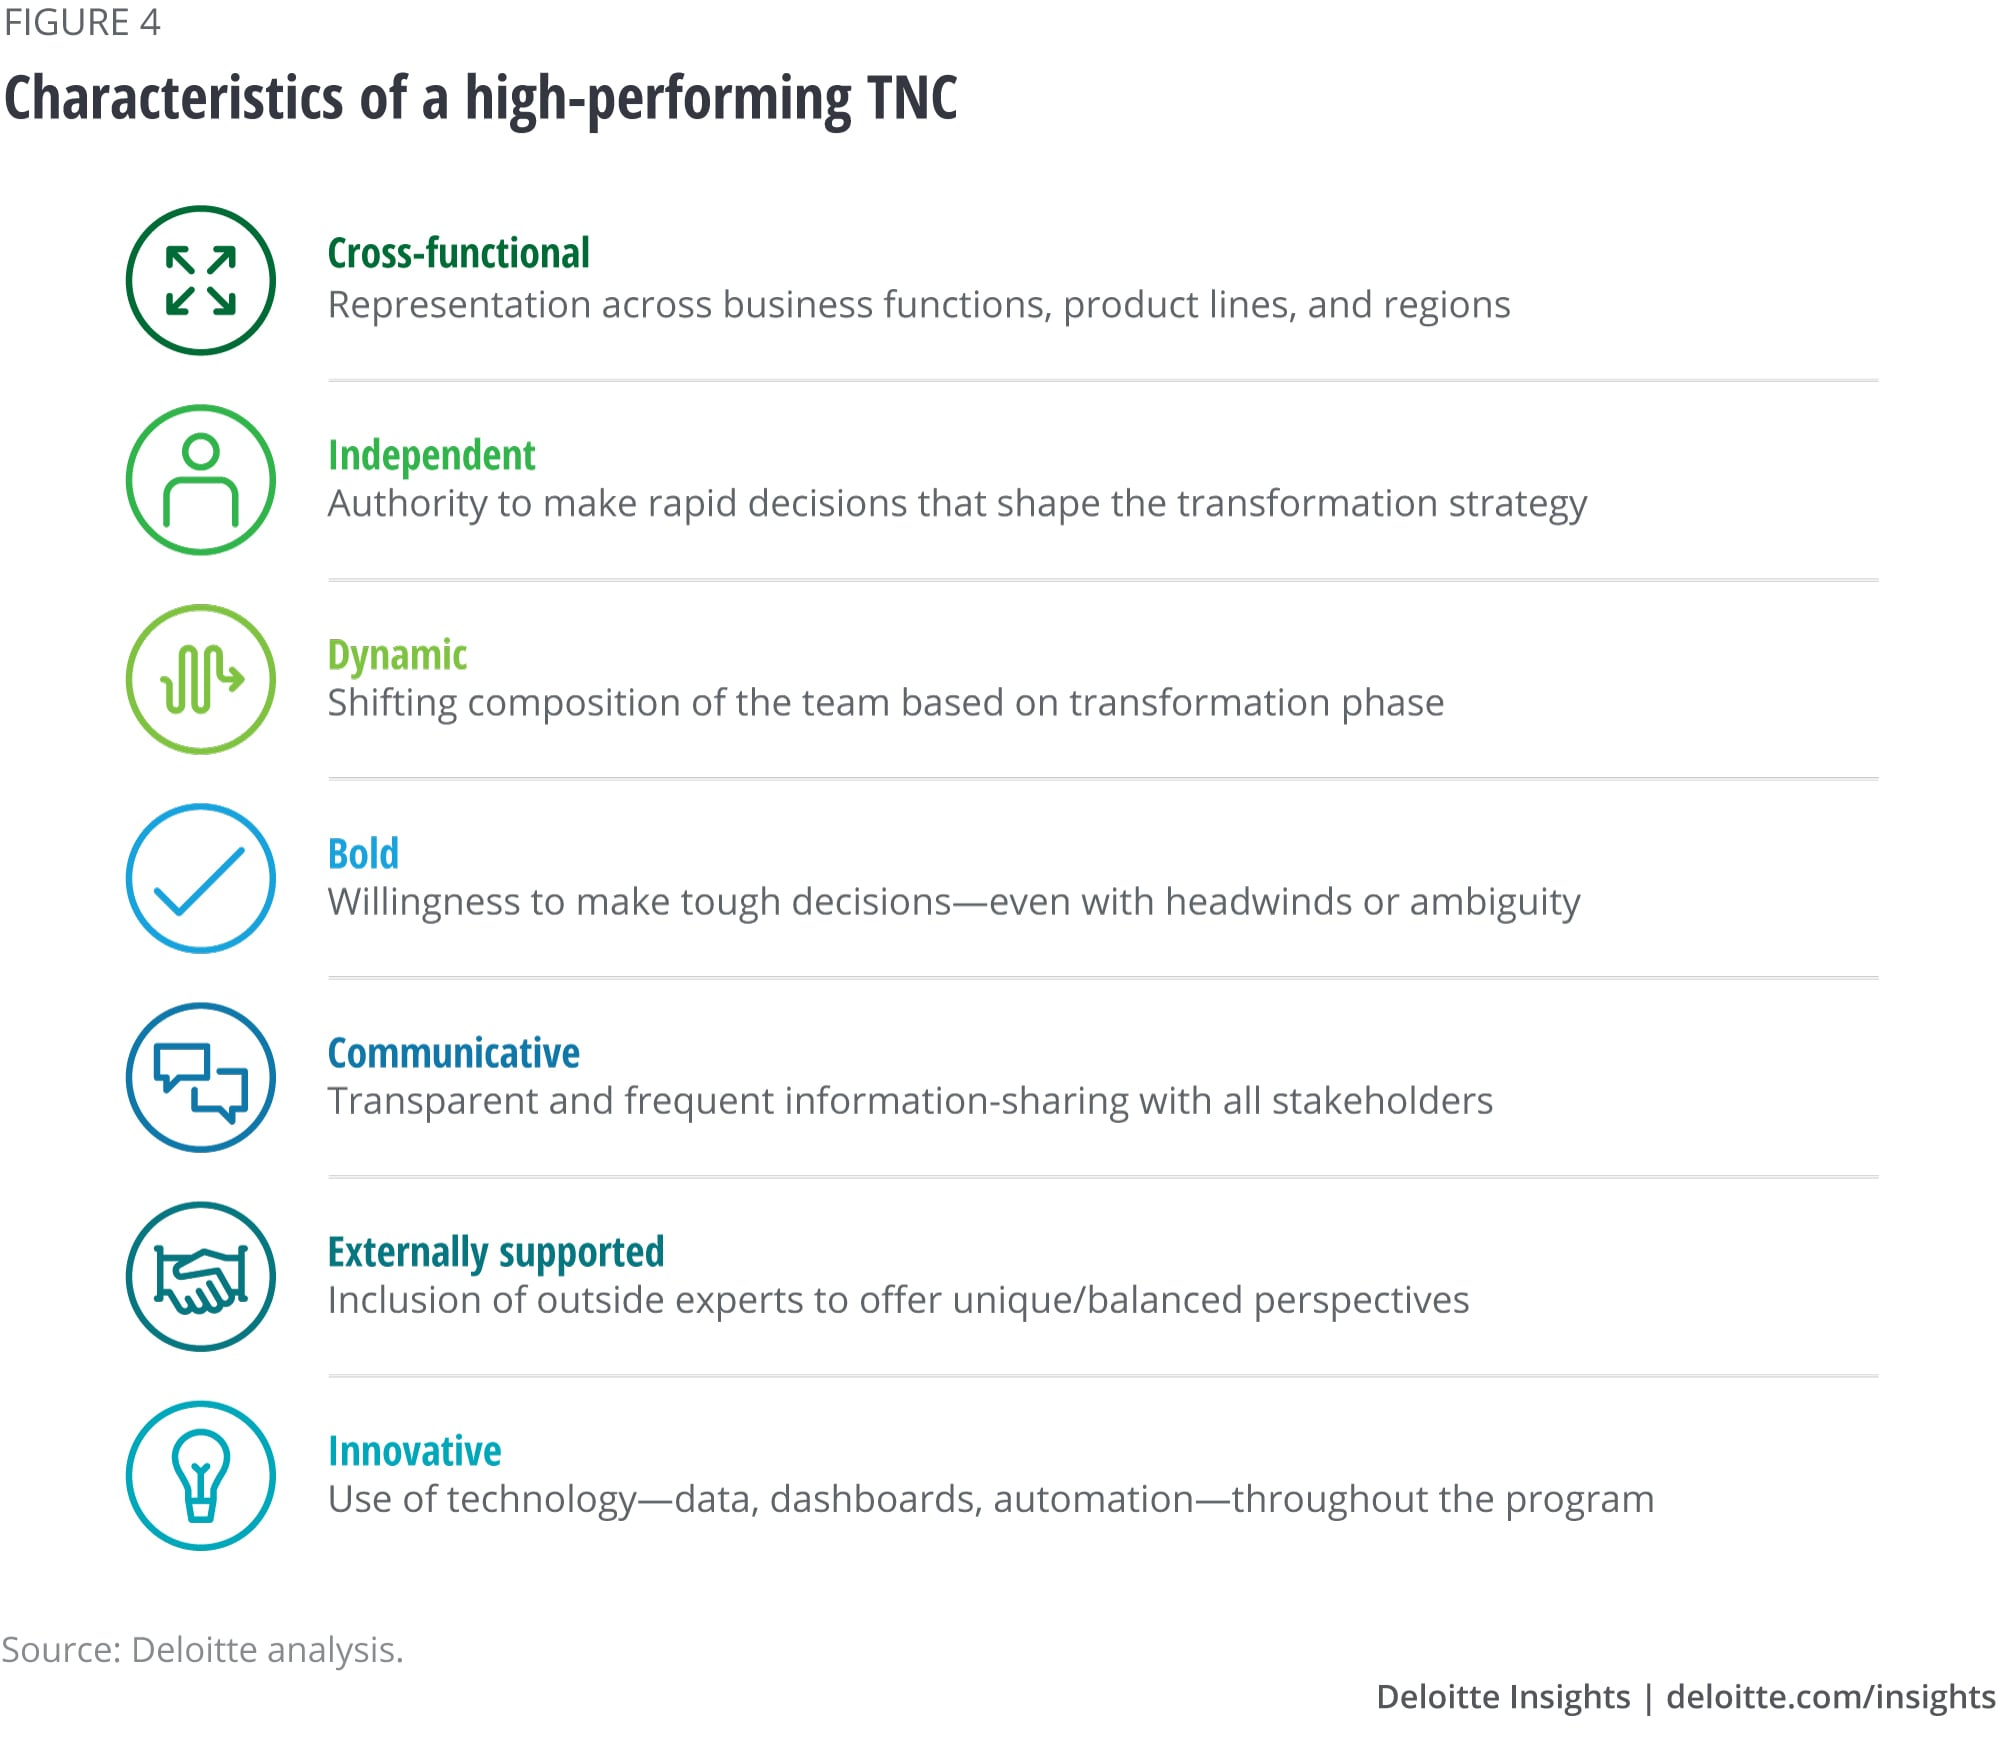 Characteristics of a high-performing TNC